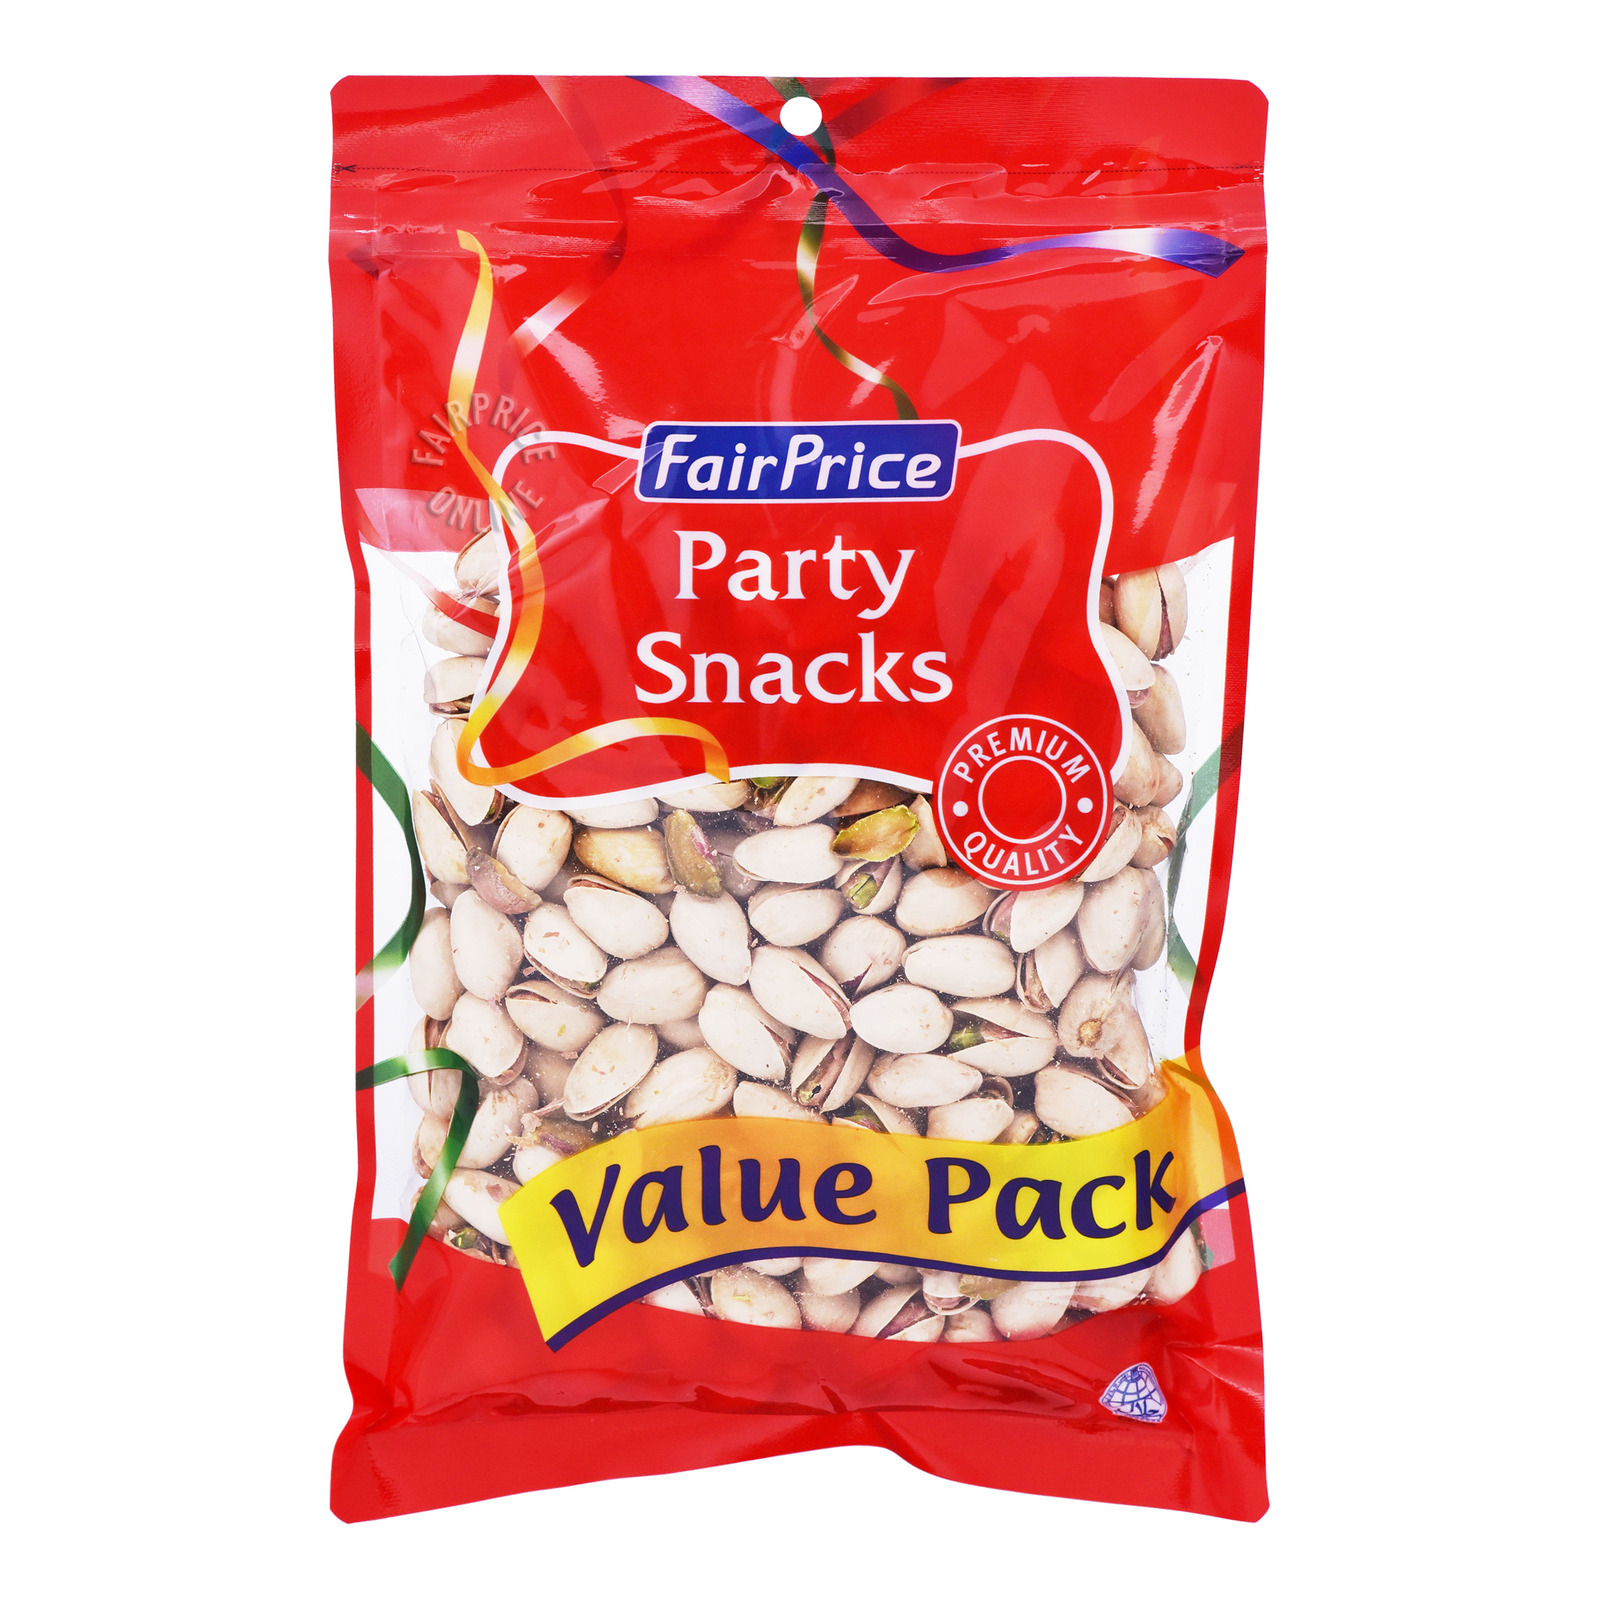 FairPrice Party Snacks - Roasted Pistachios (Unsalted)